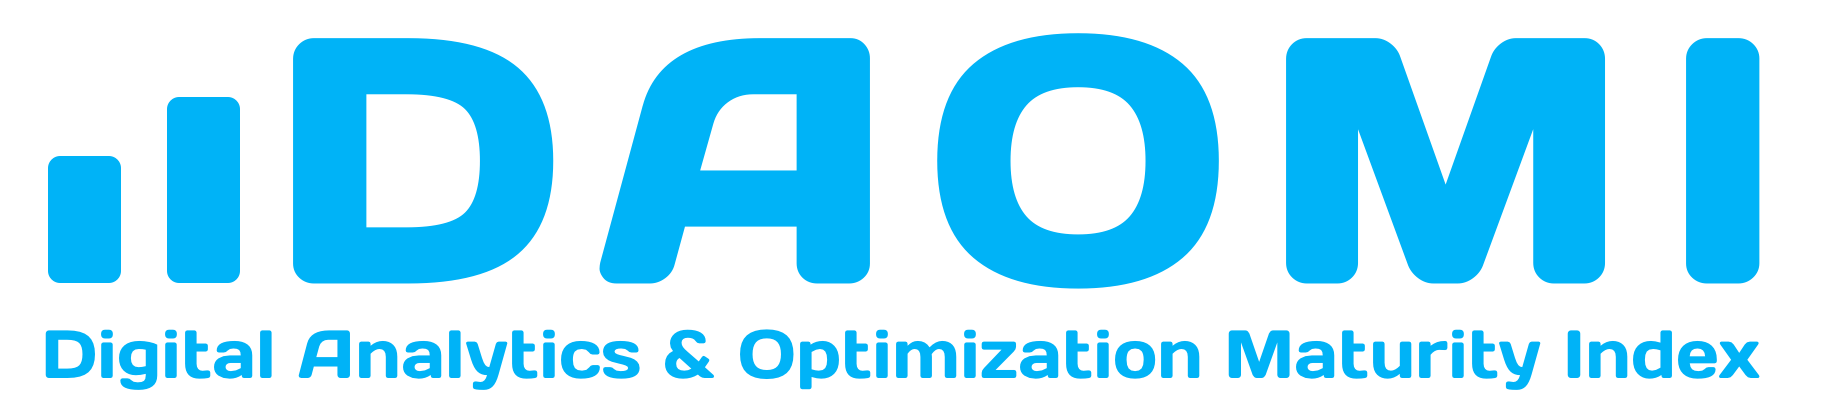 Digital Analytics & Optimization Maturity Index